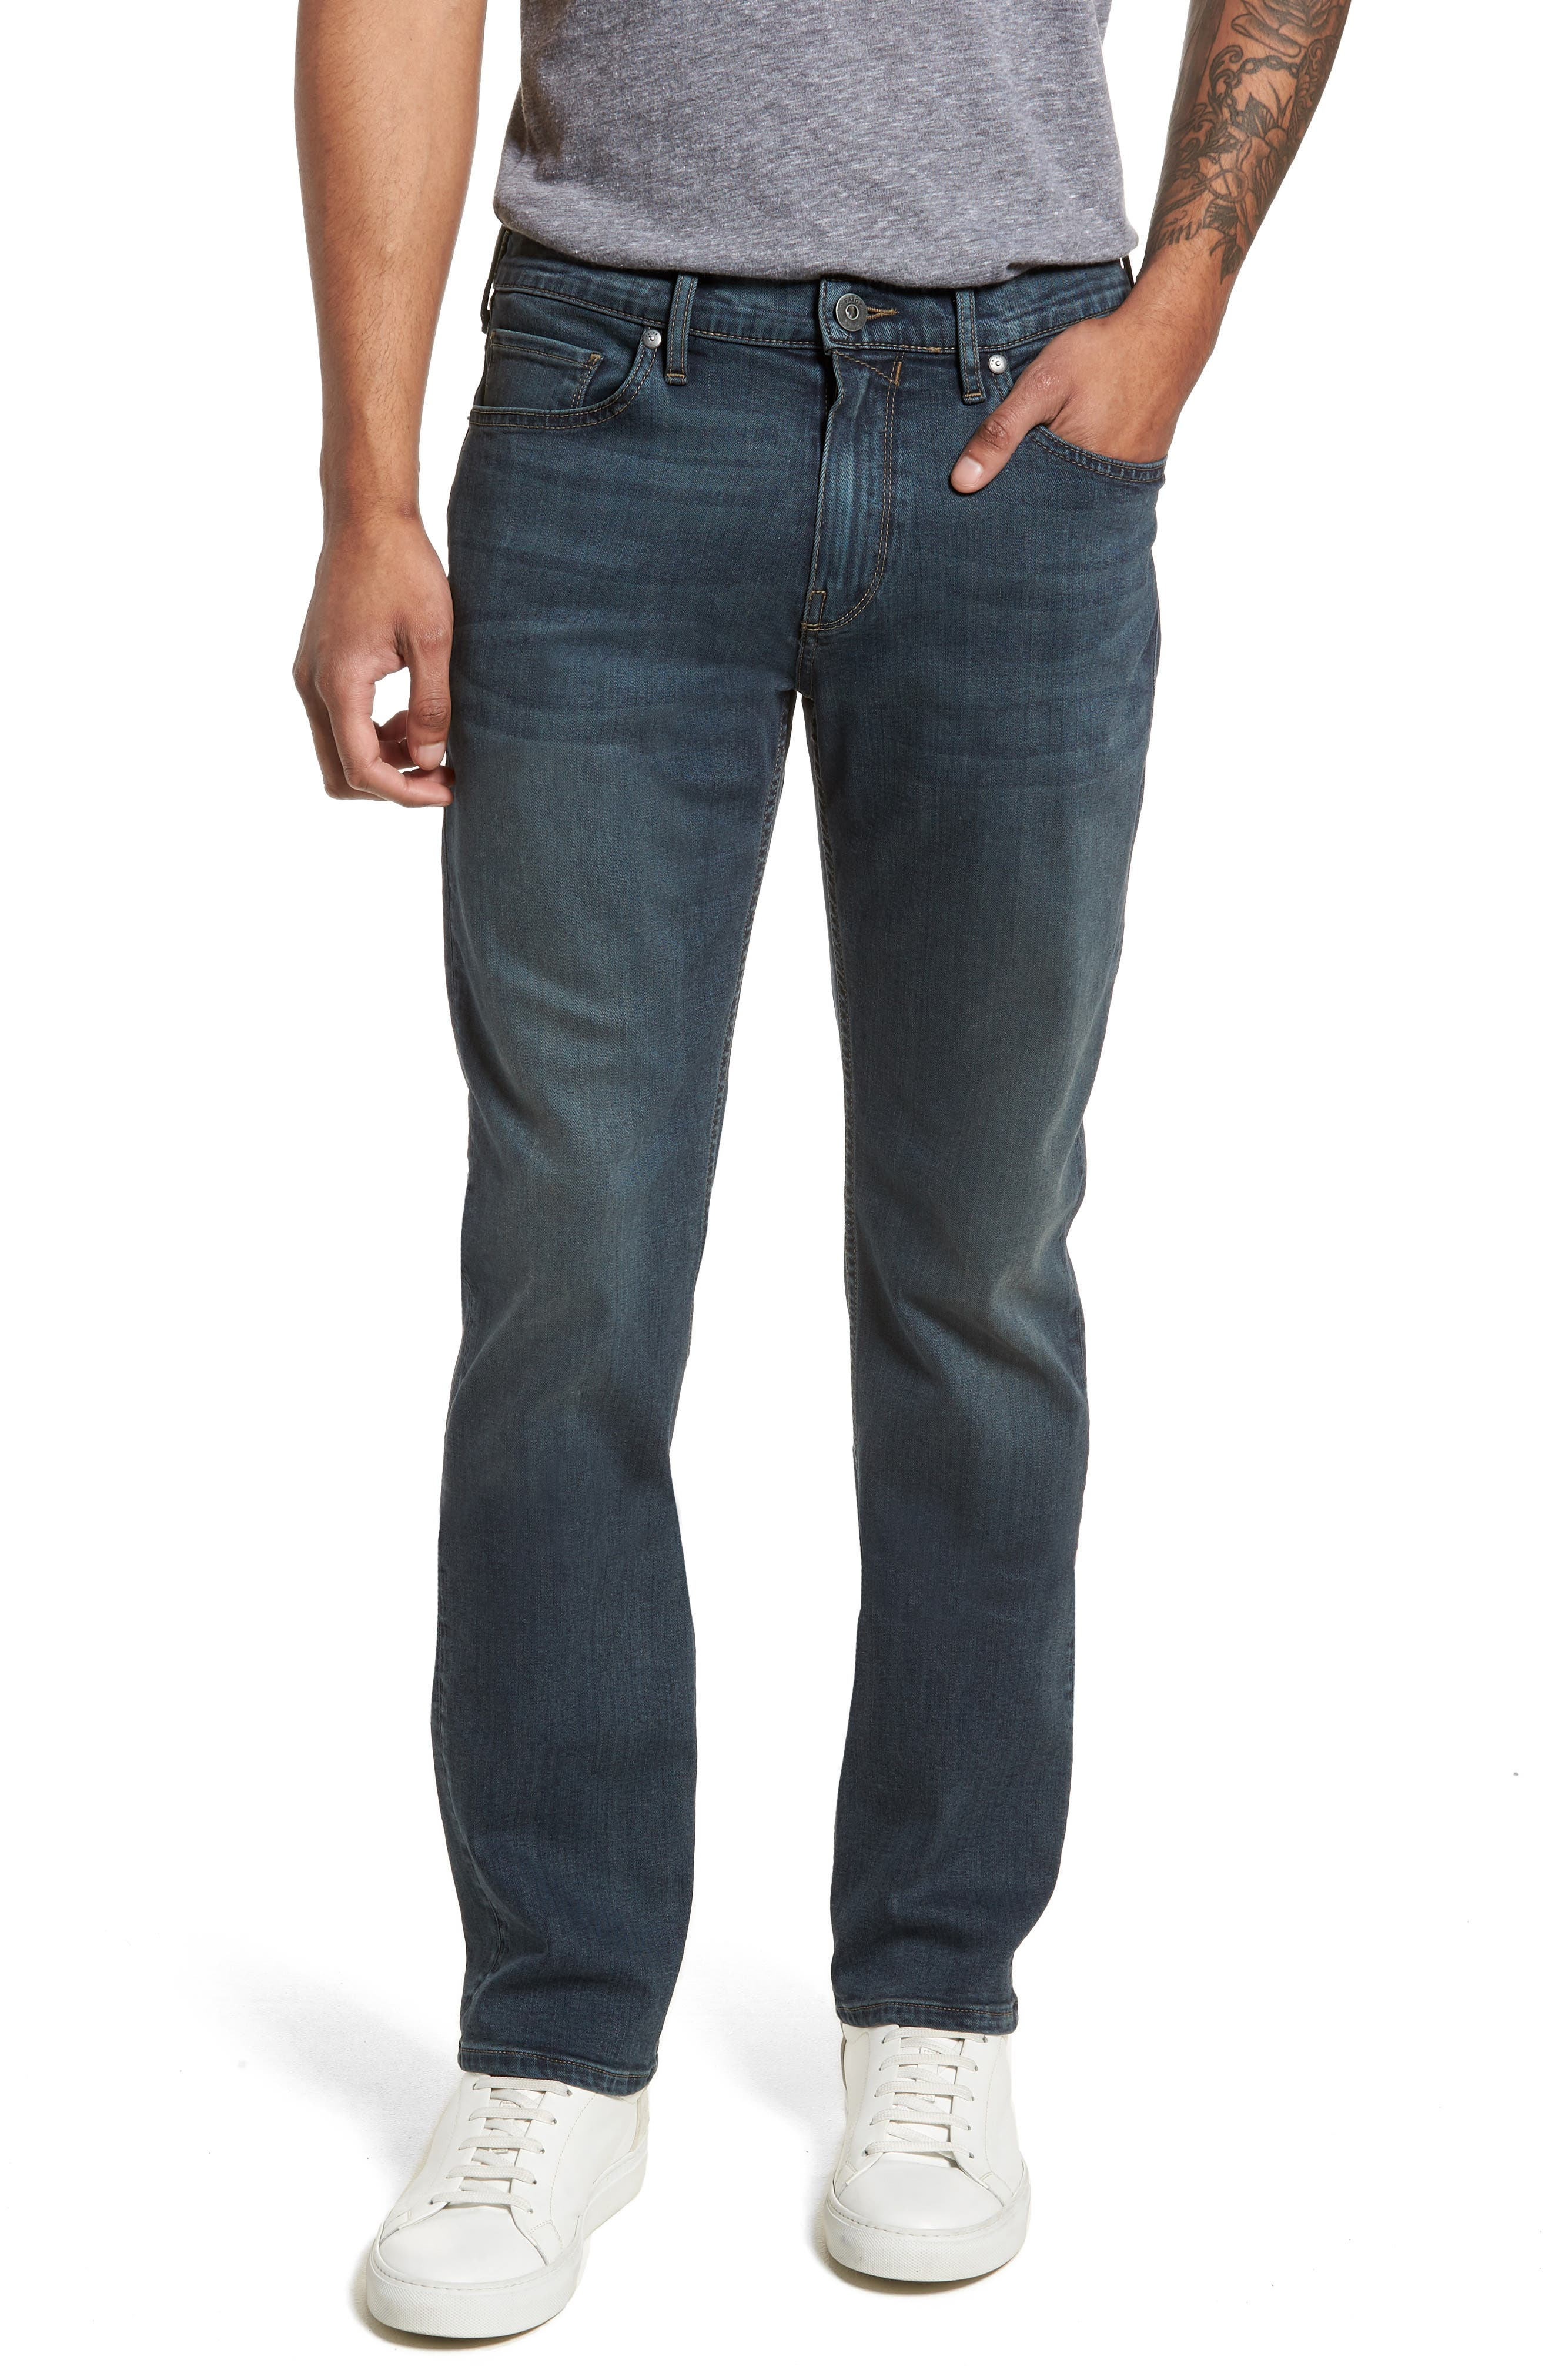 Byron Slim Straight Fit Jeans,                             Main thumbnail 1, color,                             424